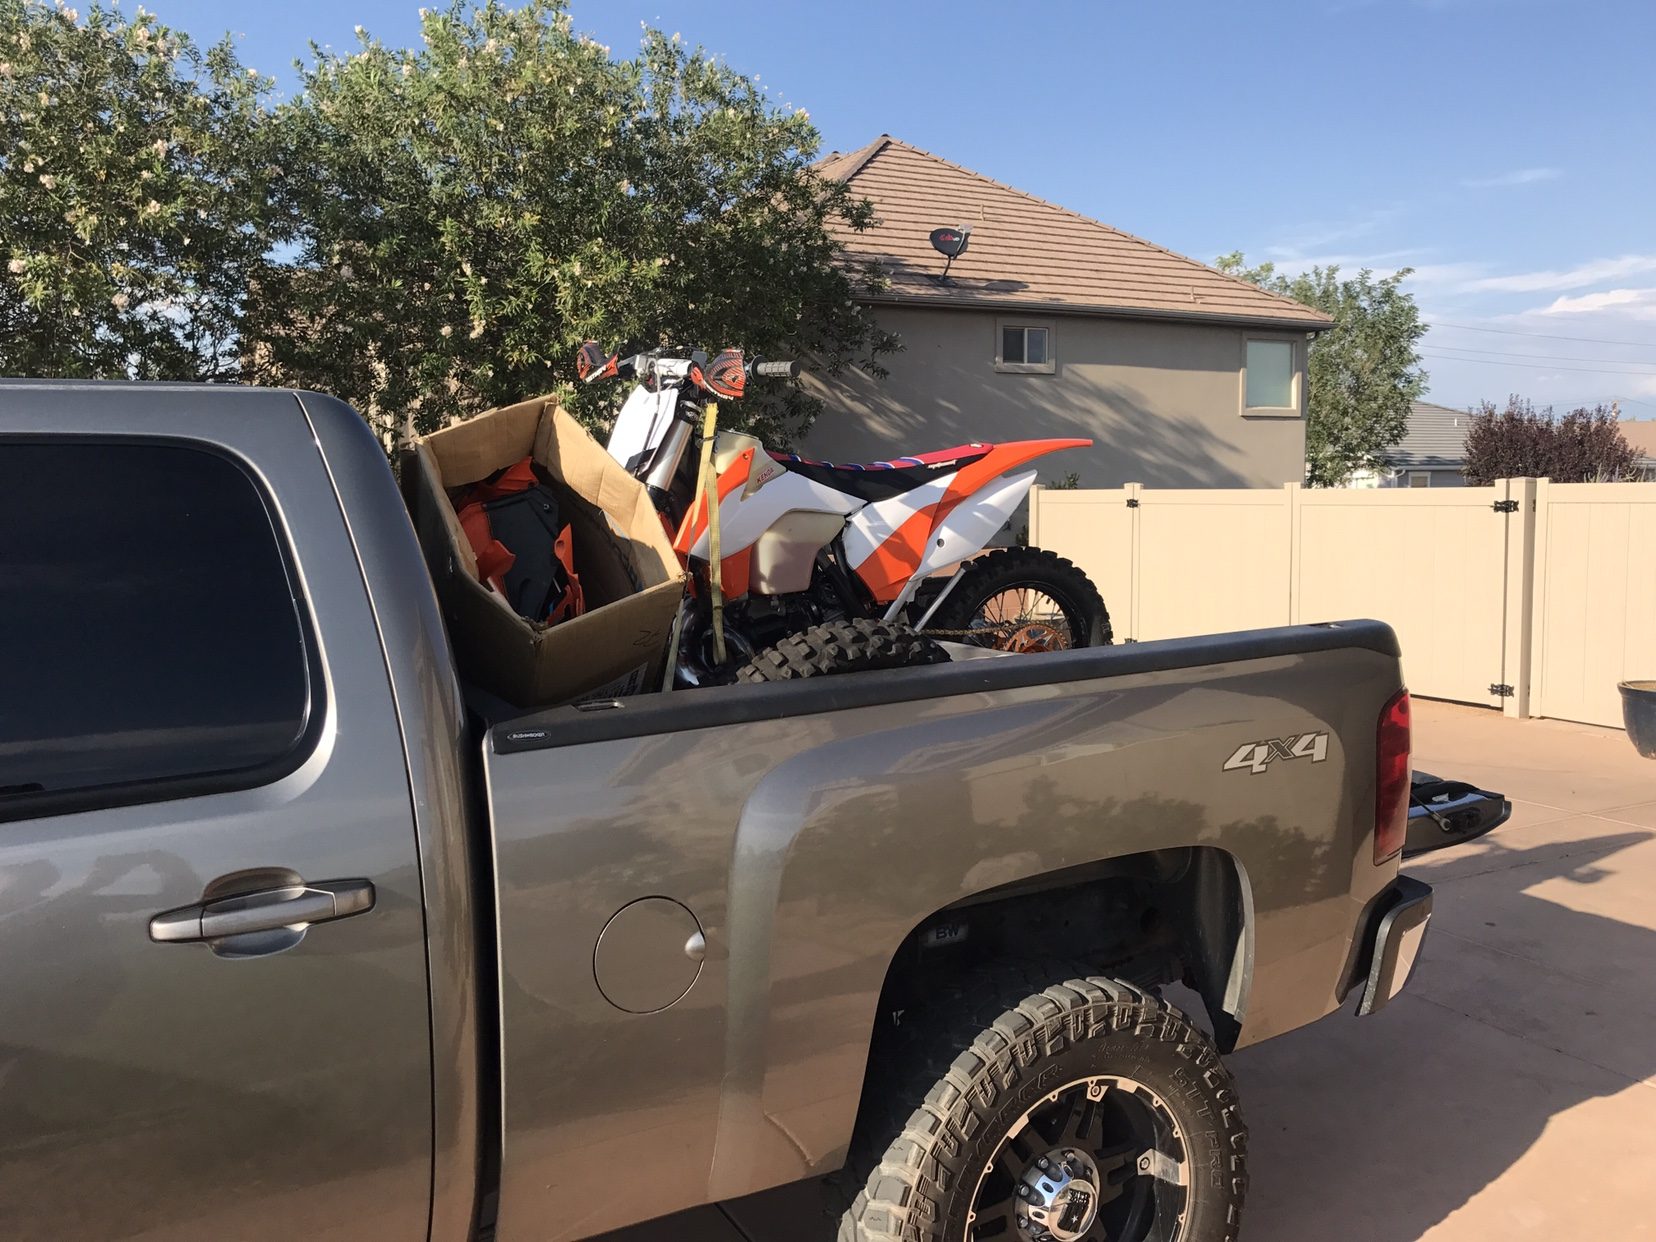 What's the reality of a 2011 KX450F as a trail bike? - What